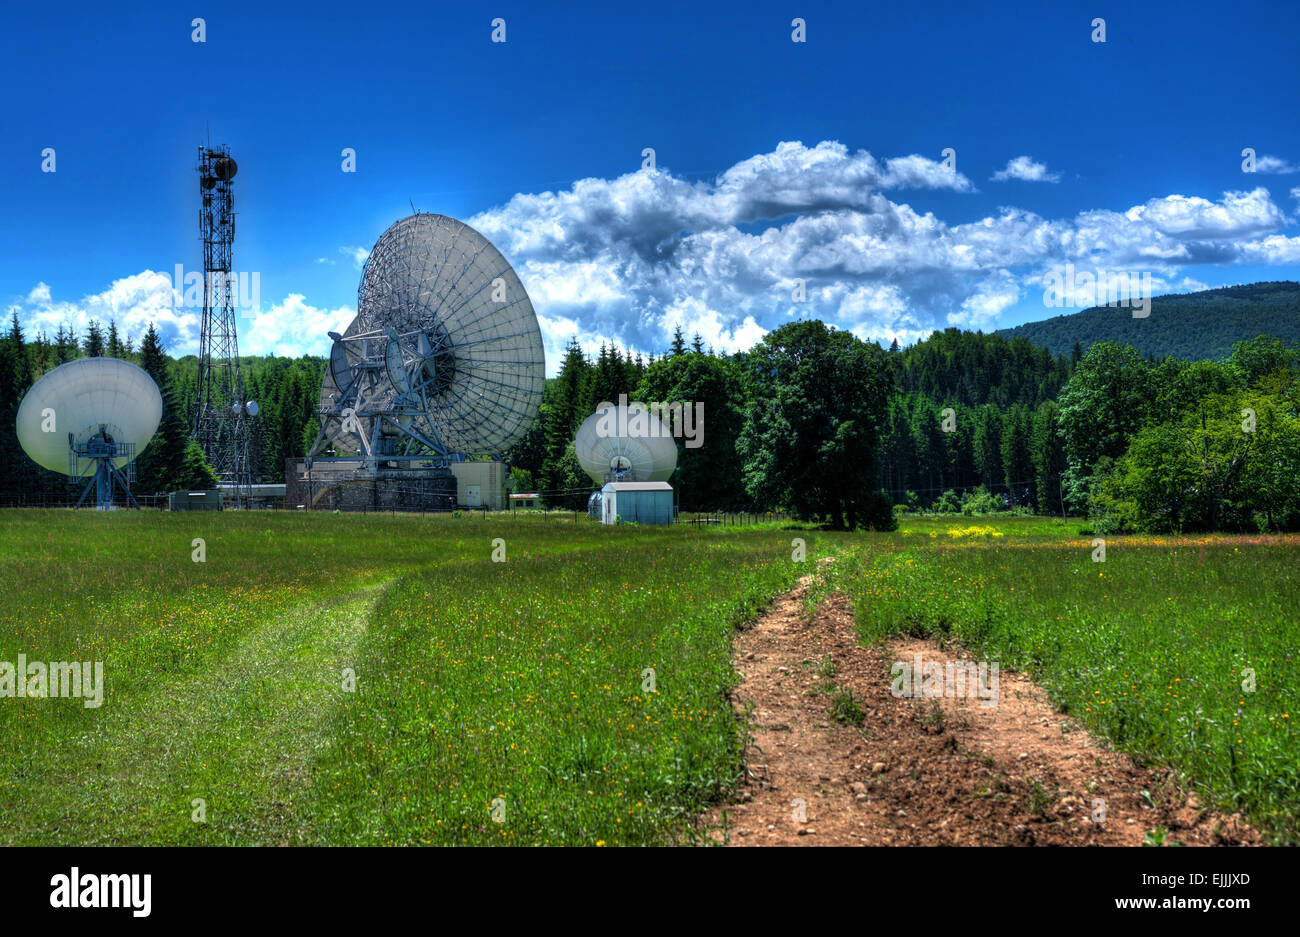 Telecommunication antennas in the mountains. - Stock Image